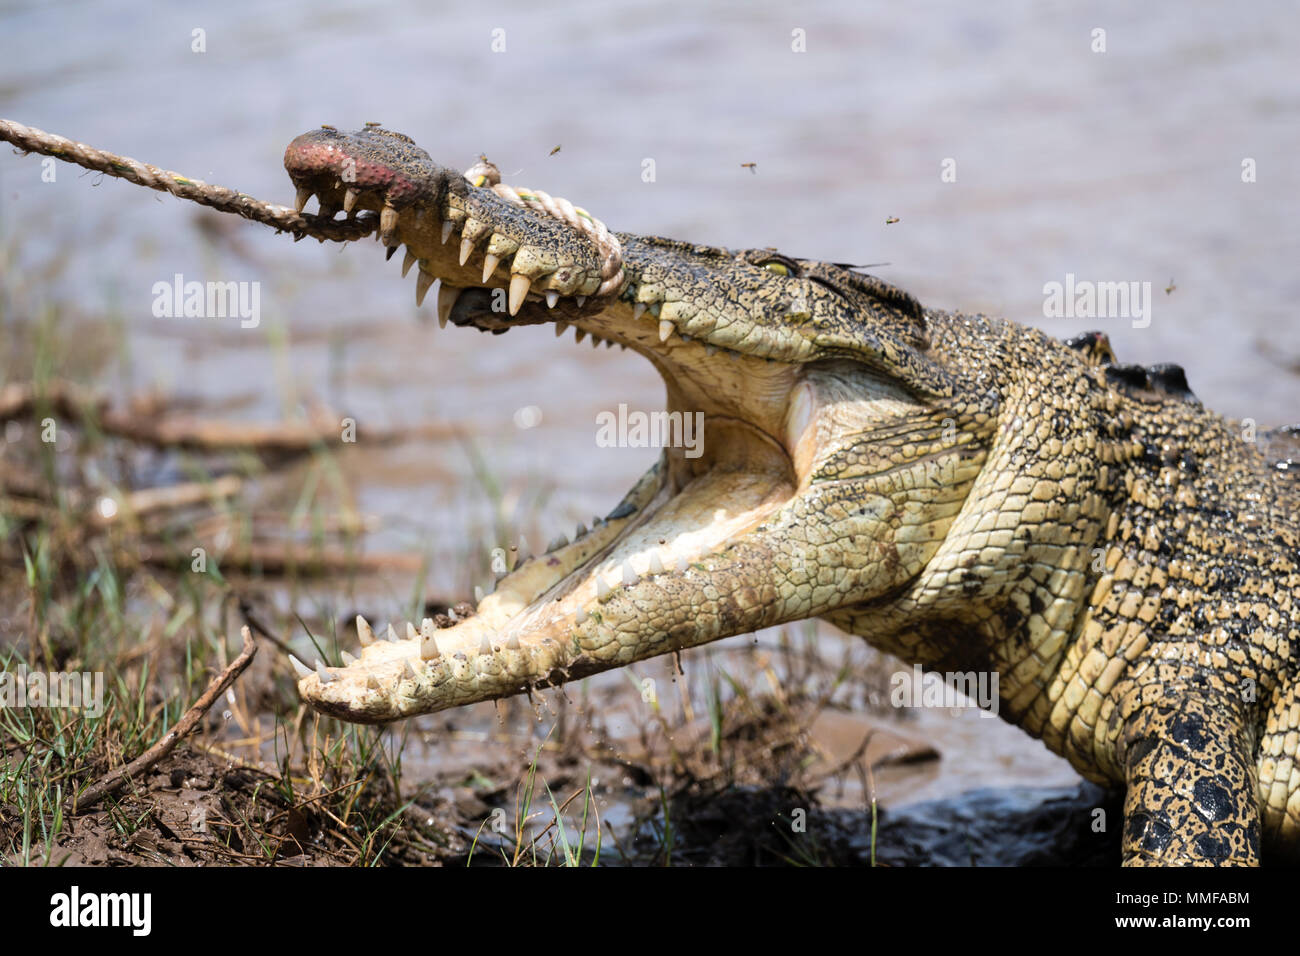 Restraining Stock Photos Images Alamy Cut Engineer Crocodile Safety Steel Genuine Leather Brown A Saltwater With Large Teeth And Jaws Fighting Rope Is Captured By Trappers